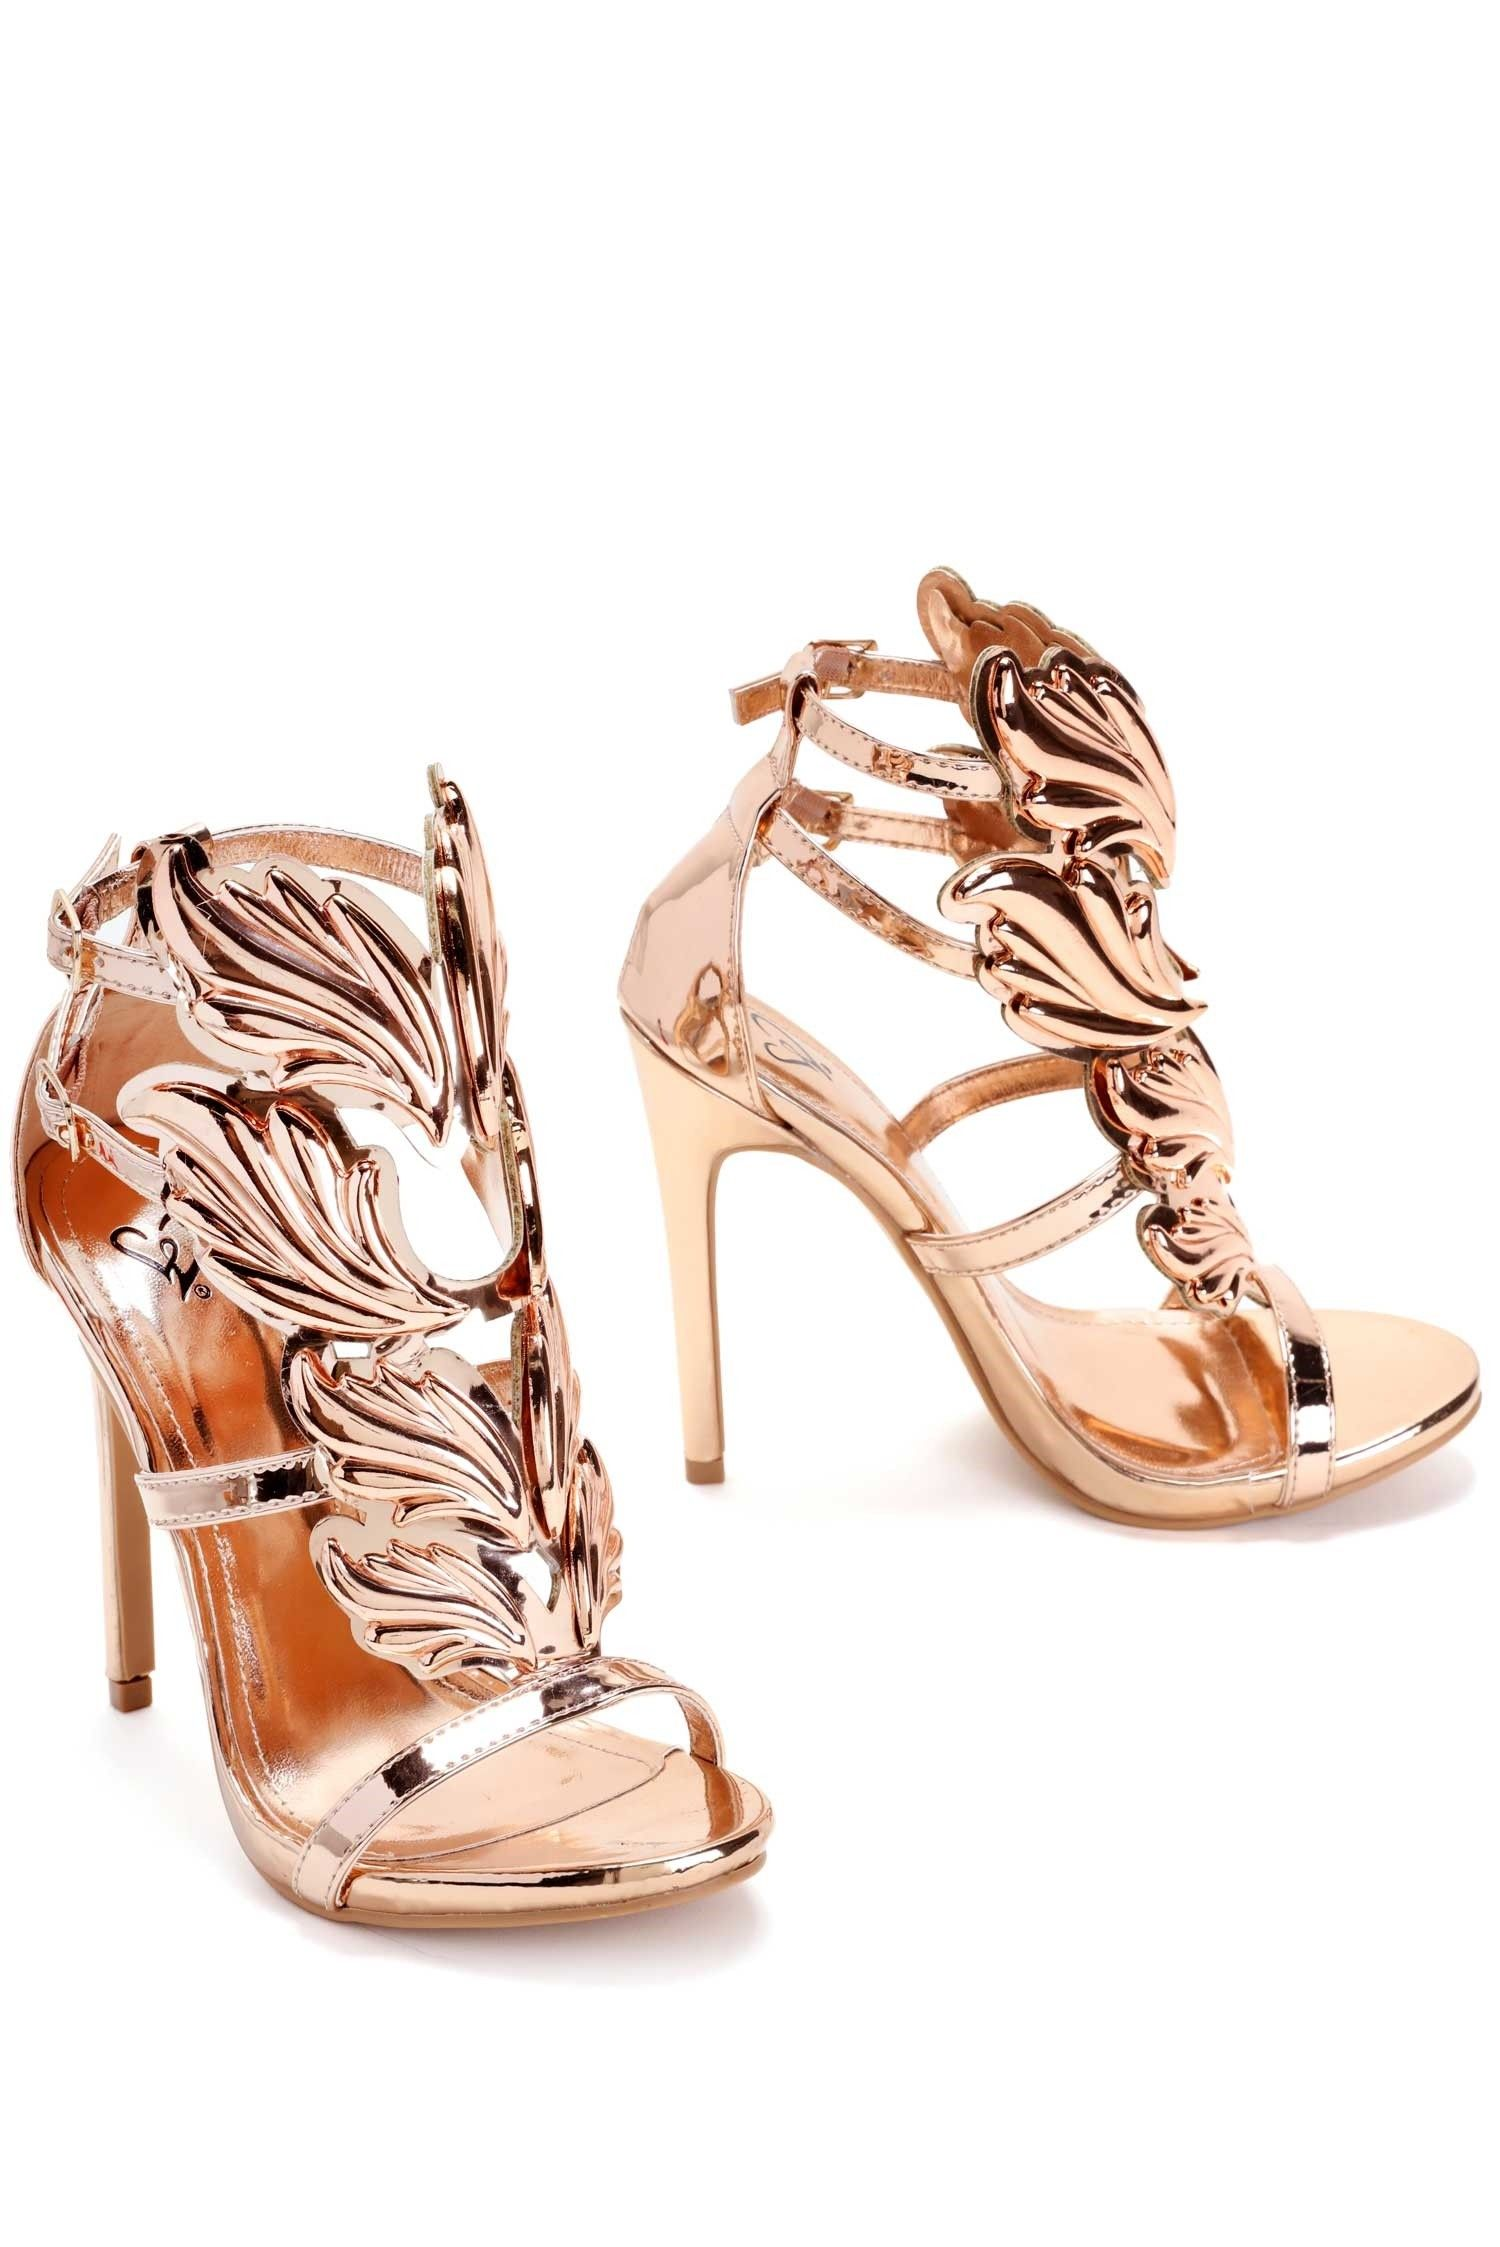 72eafd96be9 Rose Gold Winged Goddess Heels